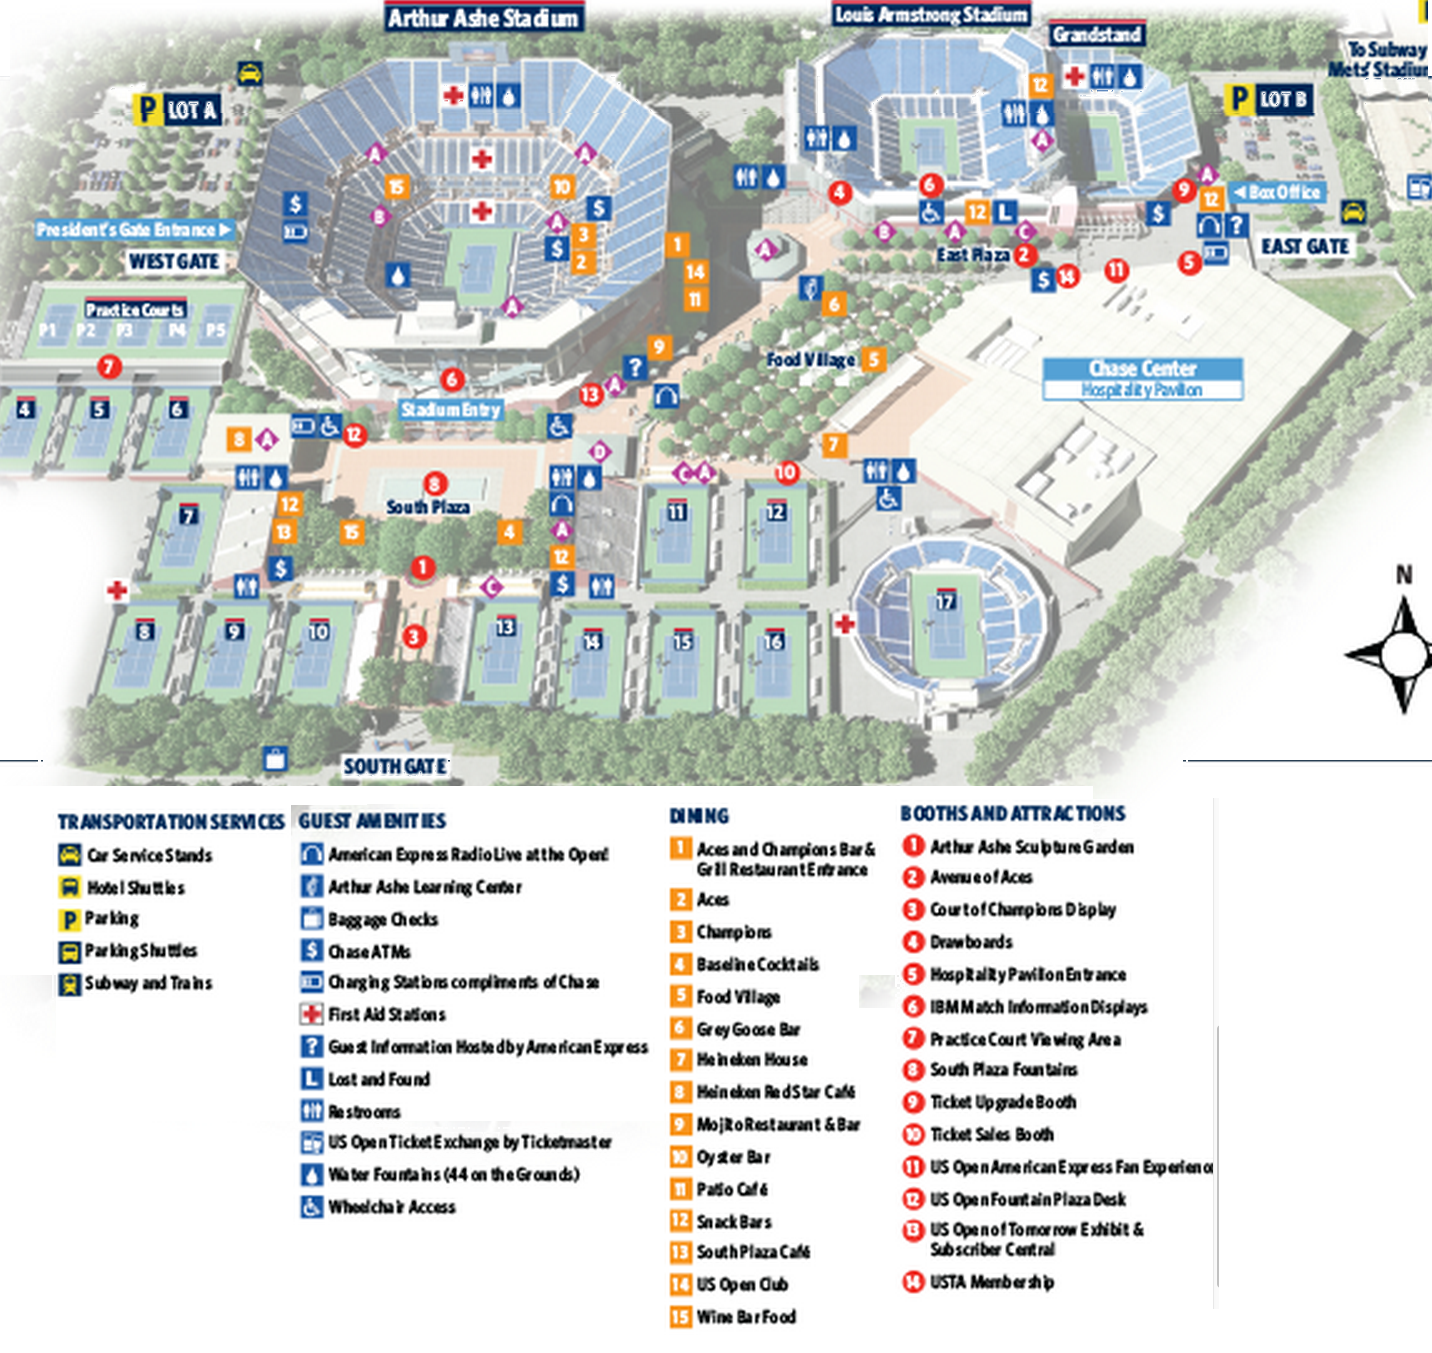 billie jean king national tennis center map us open